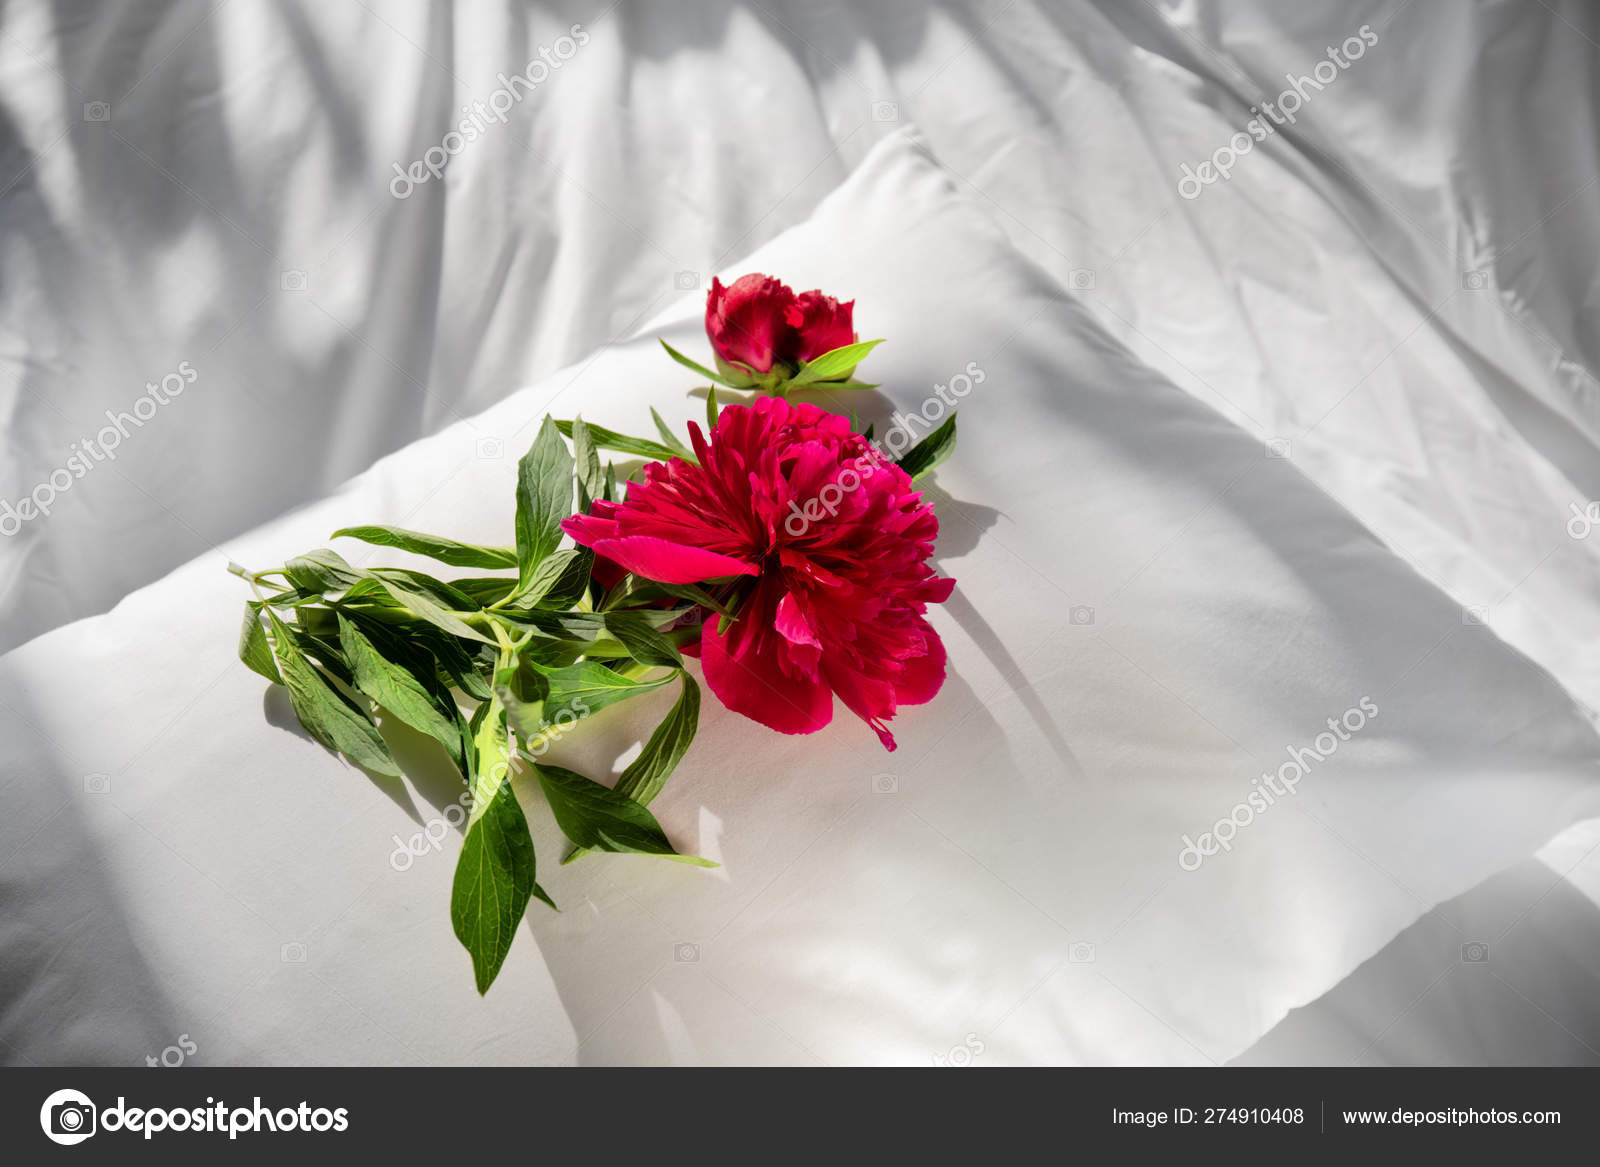 Flowers Staying On Open Book In Bed Romantic Good Morning Top View Stock Photo C Sharzemnoj 274910408